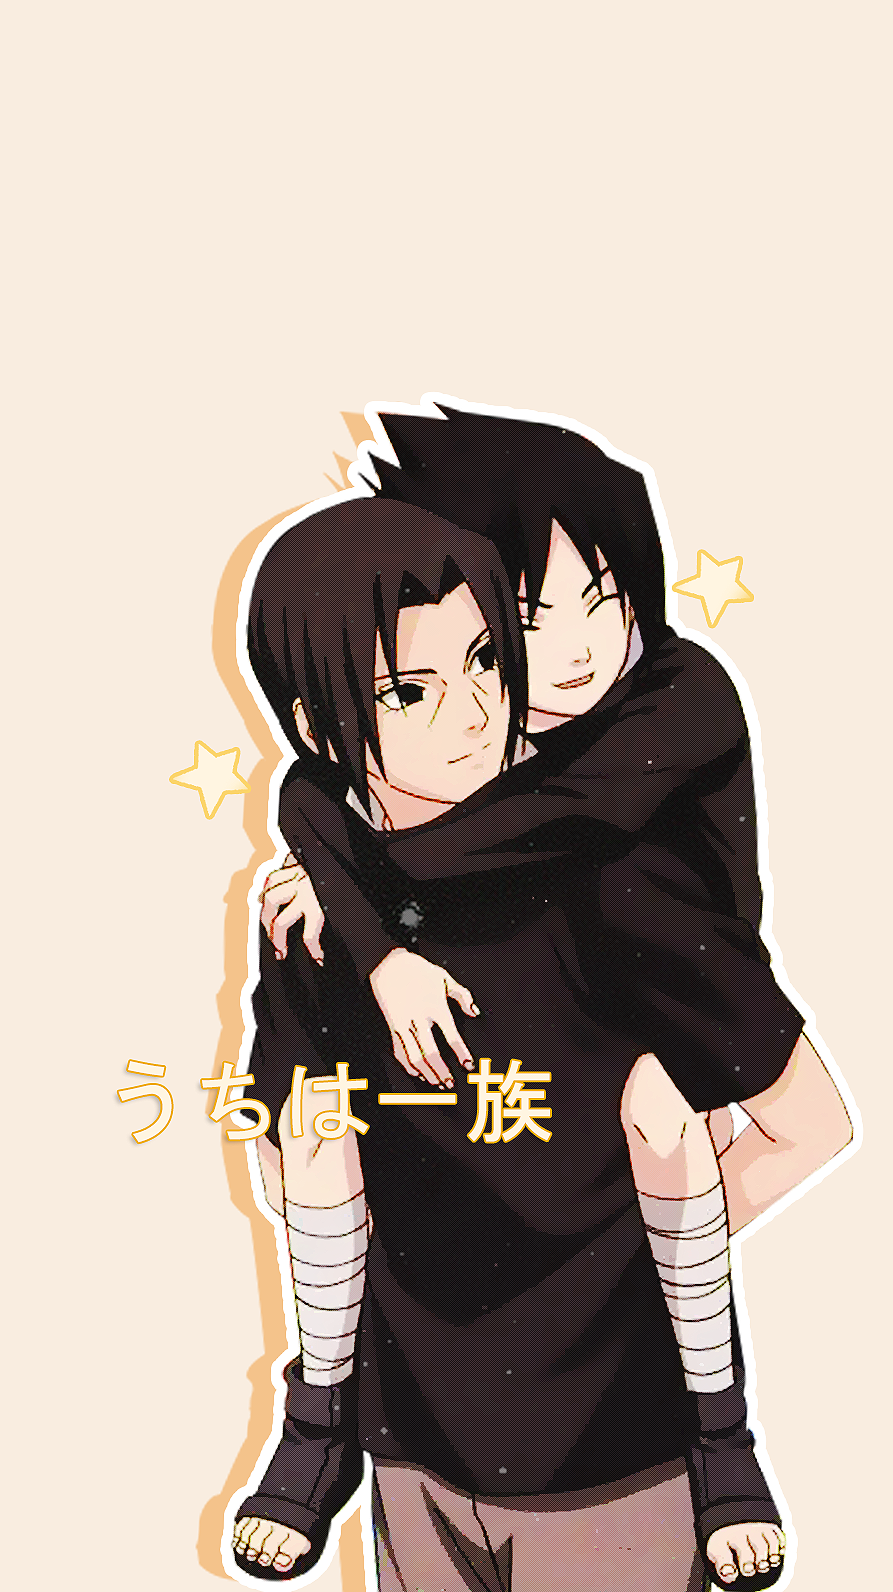 Itachi And Sasuke Wallpapers Iphone, Download Wallpapers on Jakpost